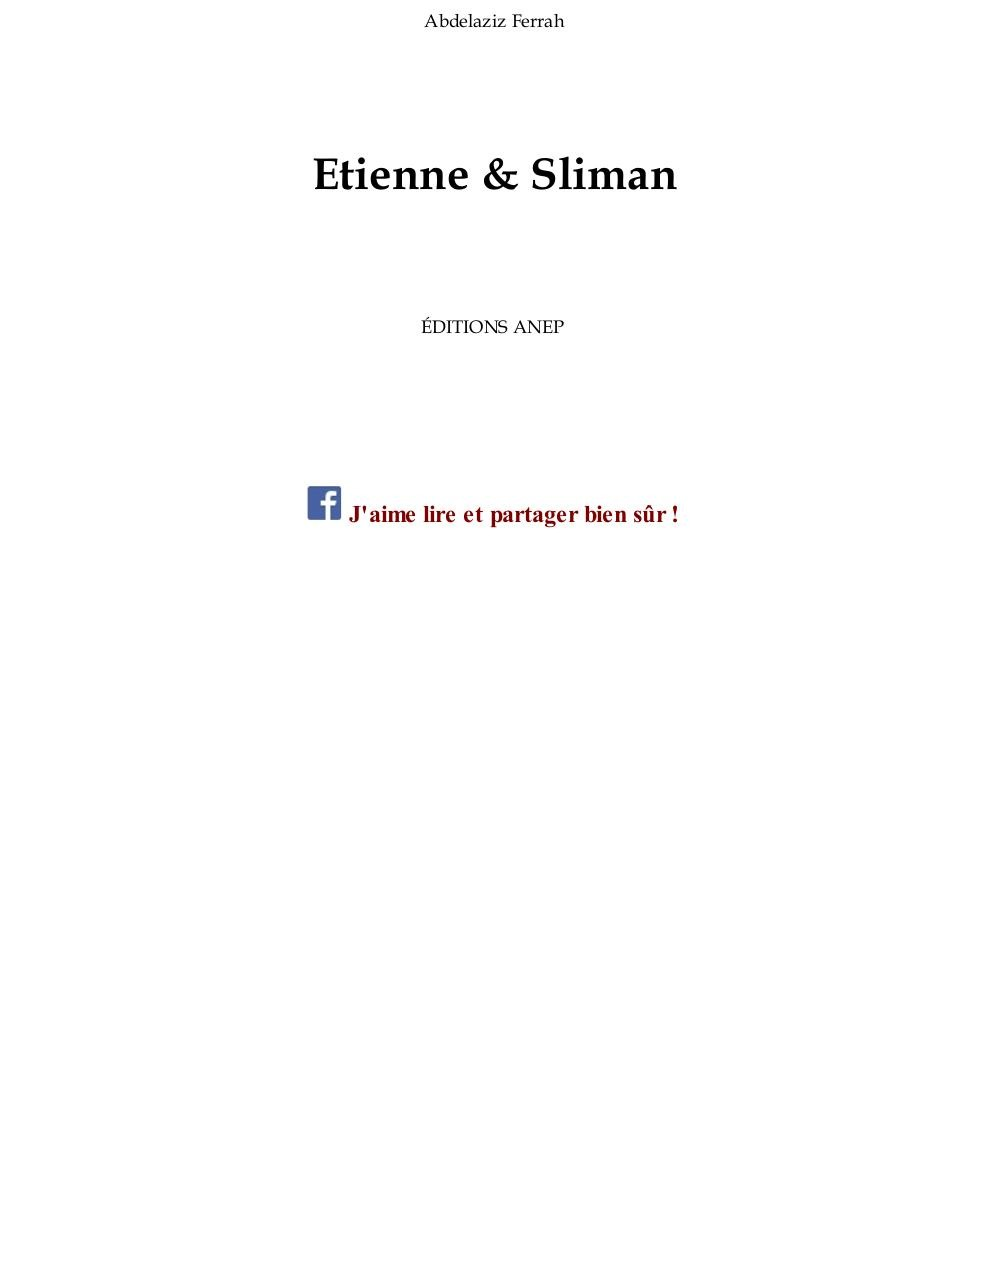 Preview of PDF document etienne-sliman-abdelaziz-ferrah-by-mourad.pdf